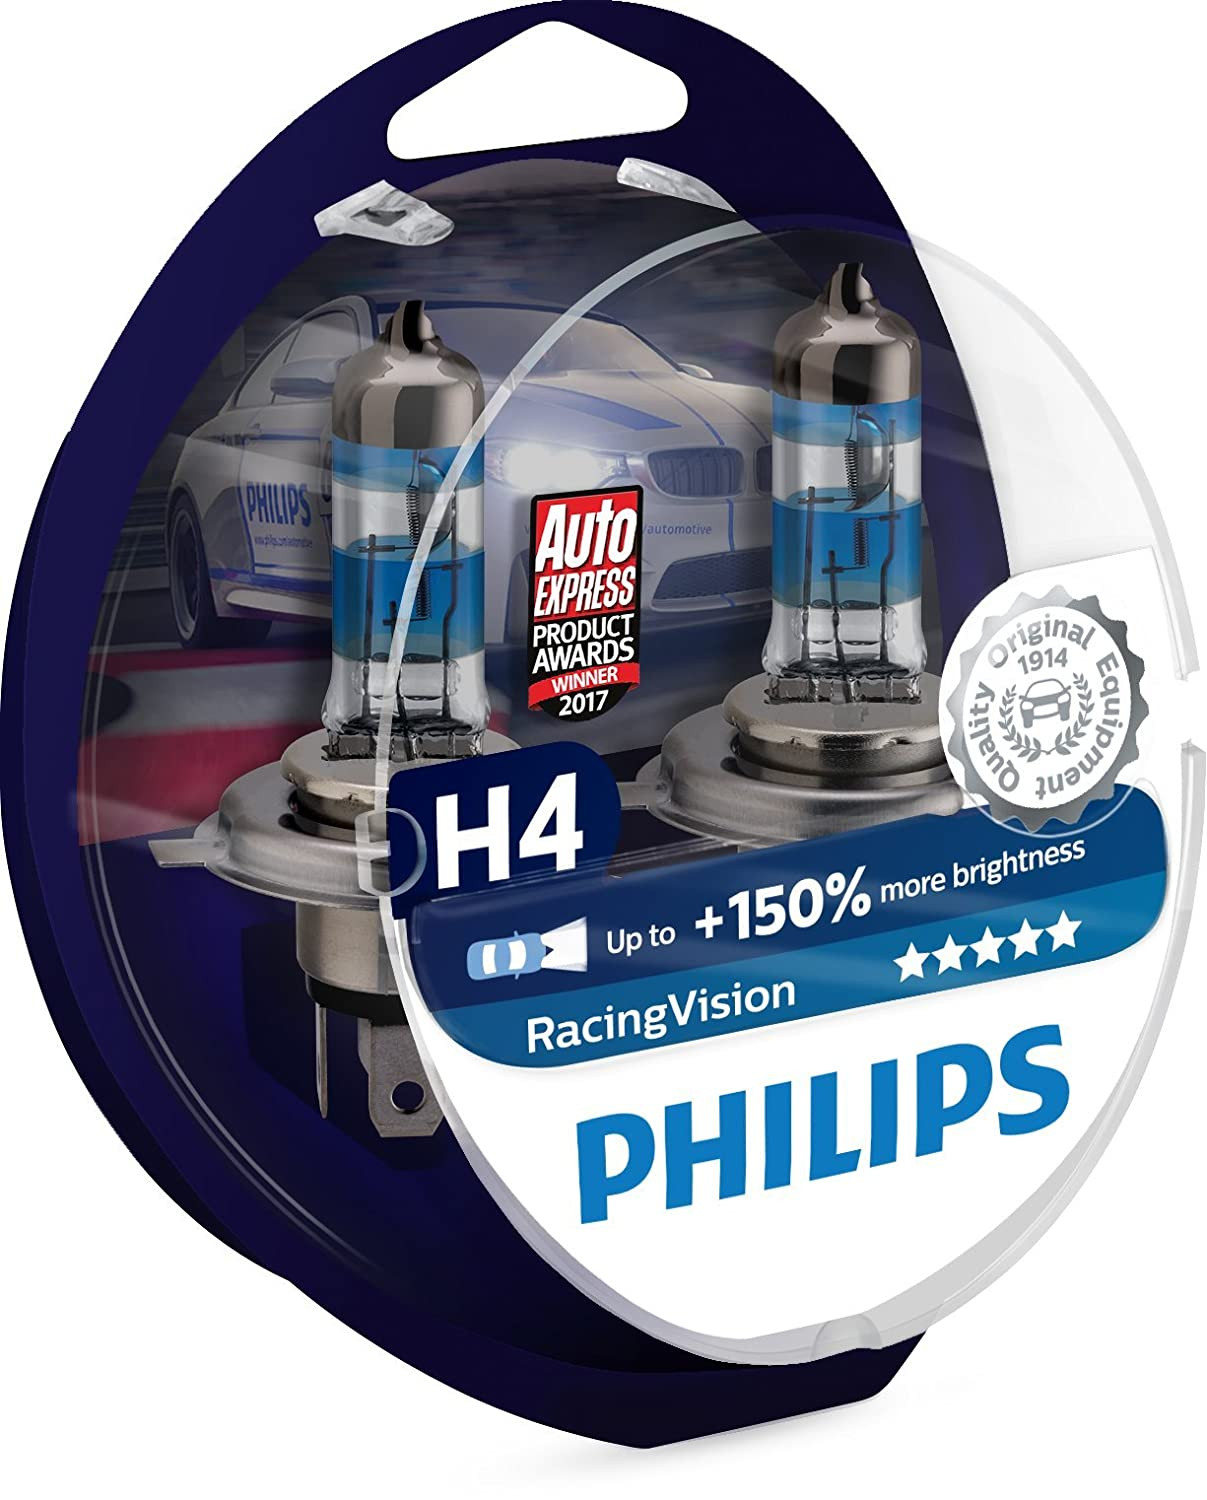 Philips RacingVision H4 Headlight Bulbs (Twin) 12342RVS2 Xtreme Vision  Upgrade